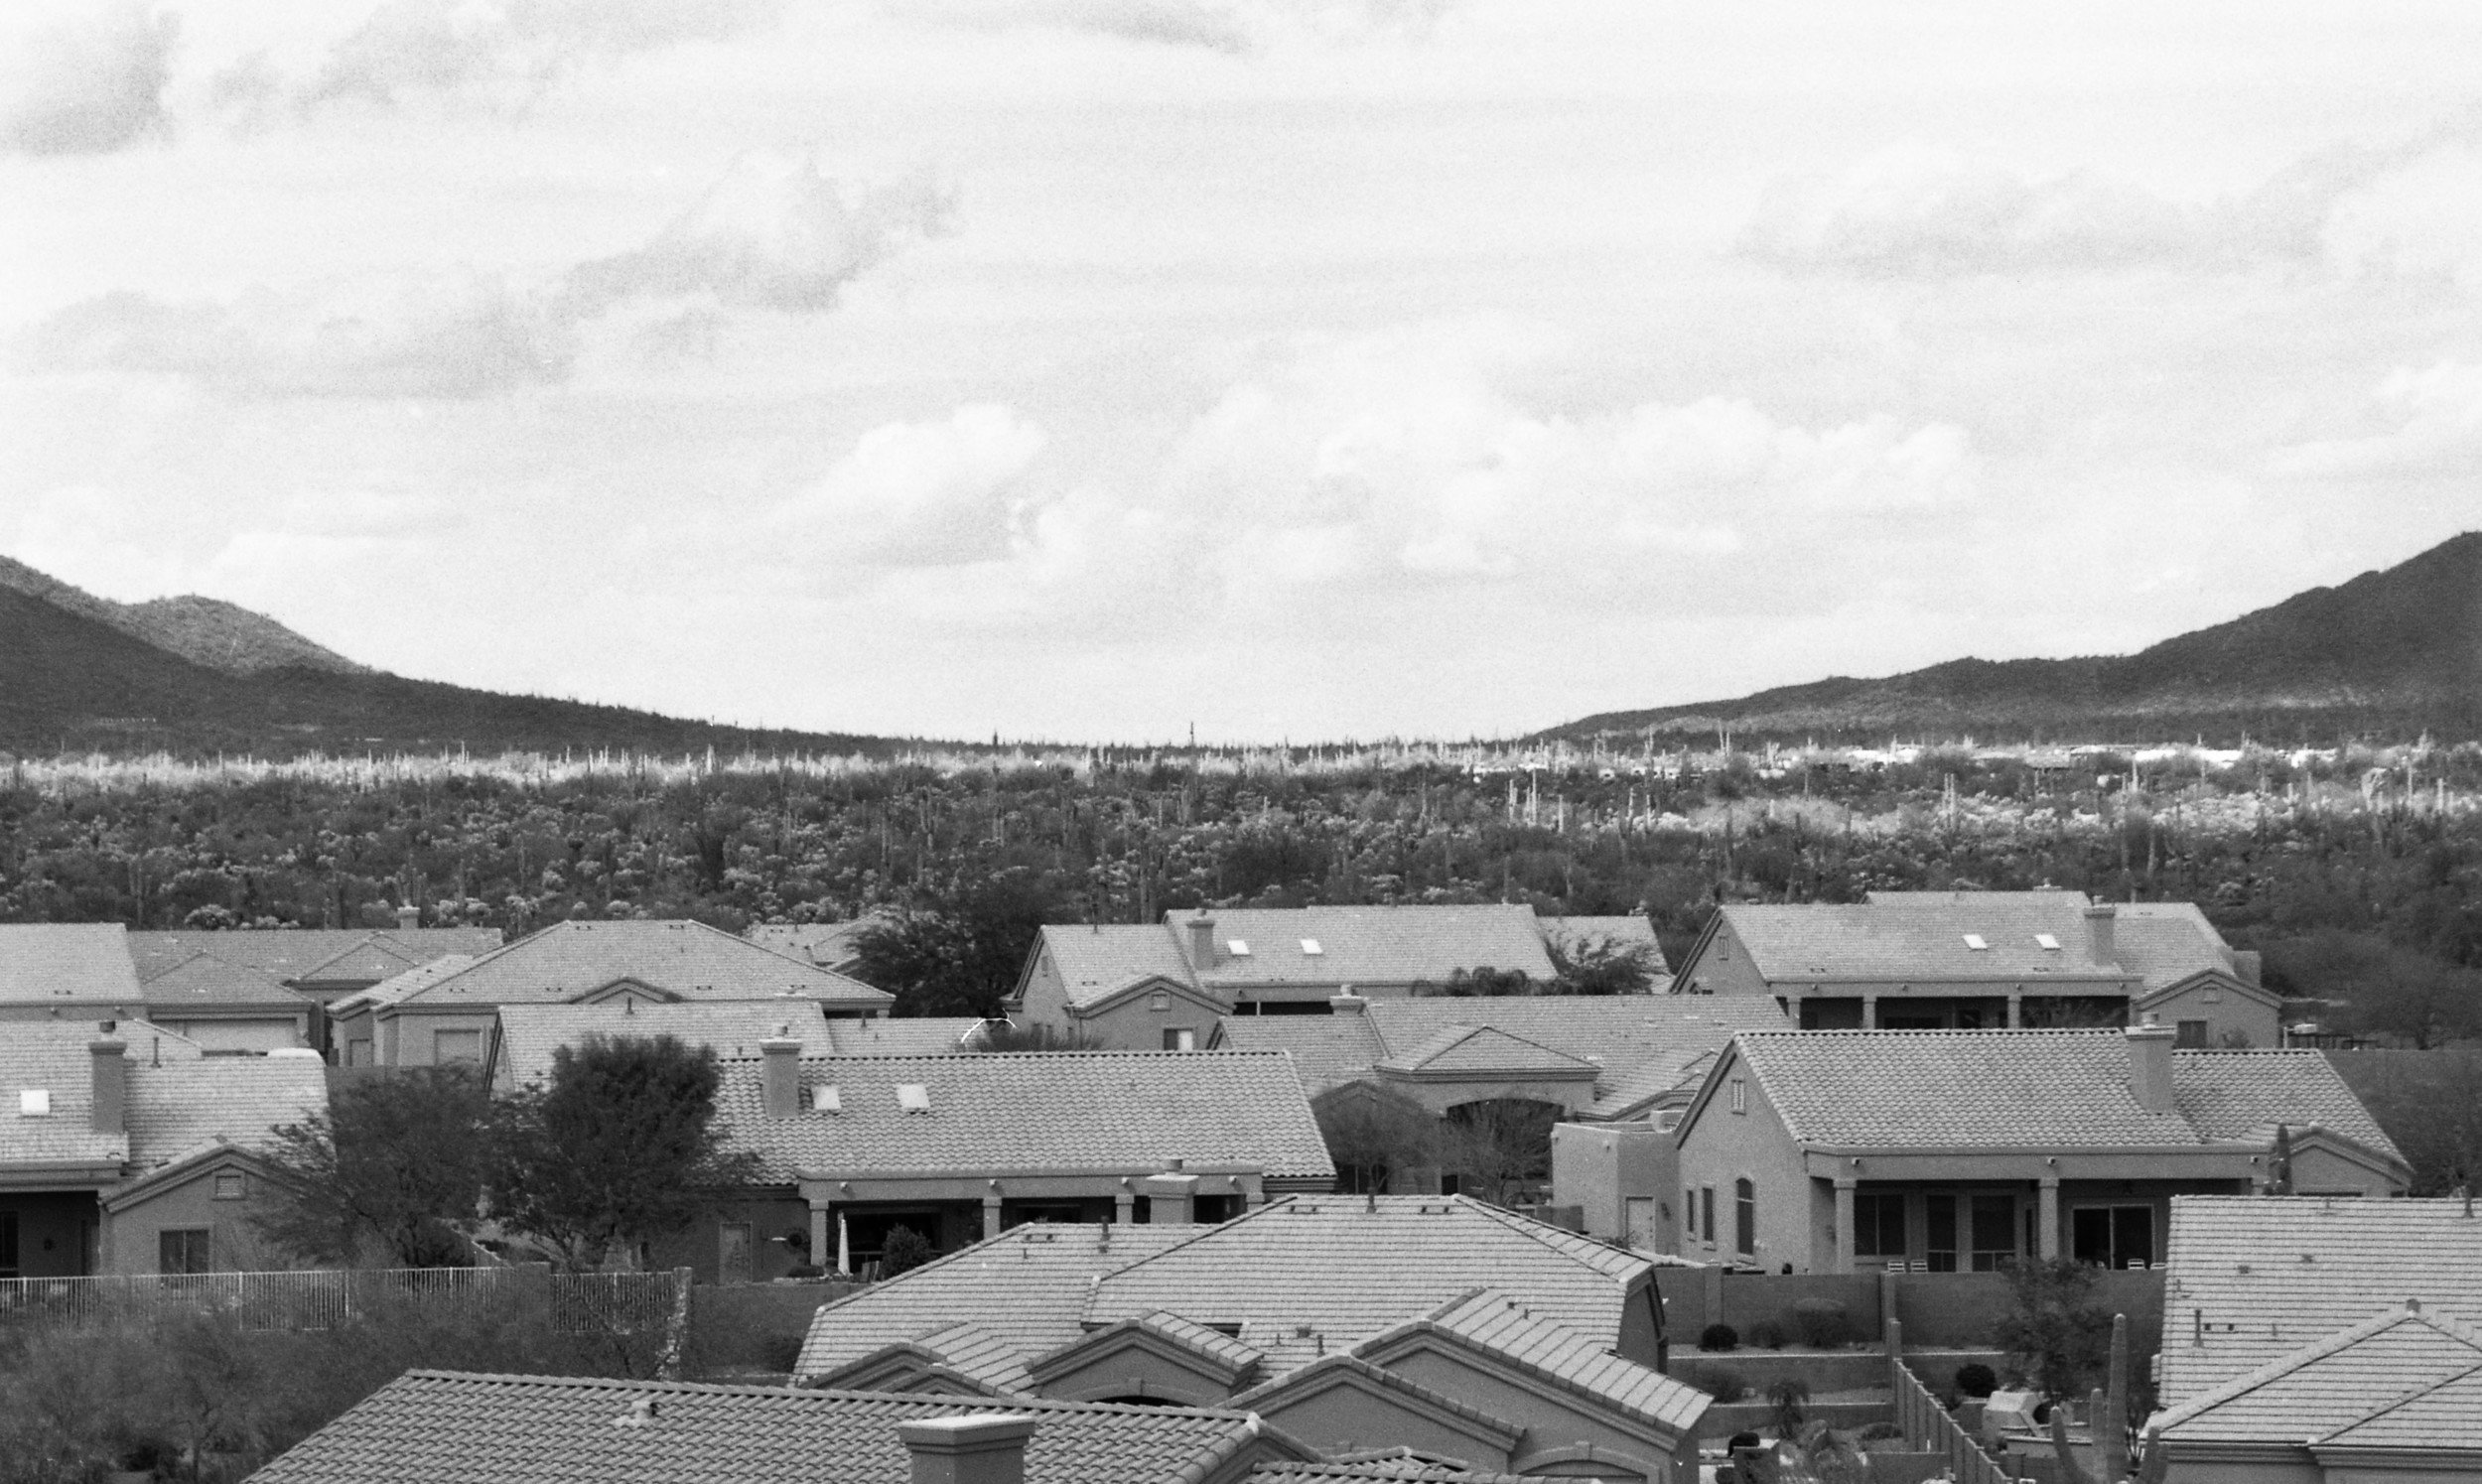 House Valley   Gelatin Silver Print © 2009, Gina DeGideo